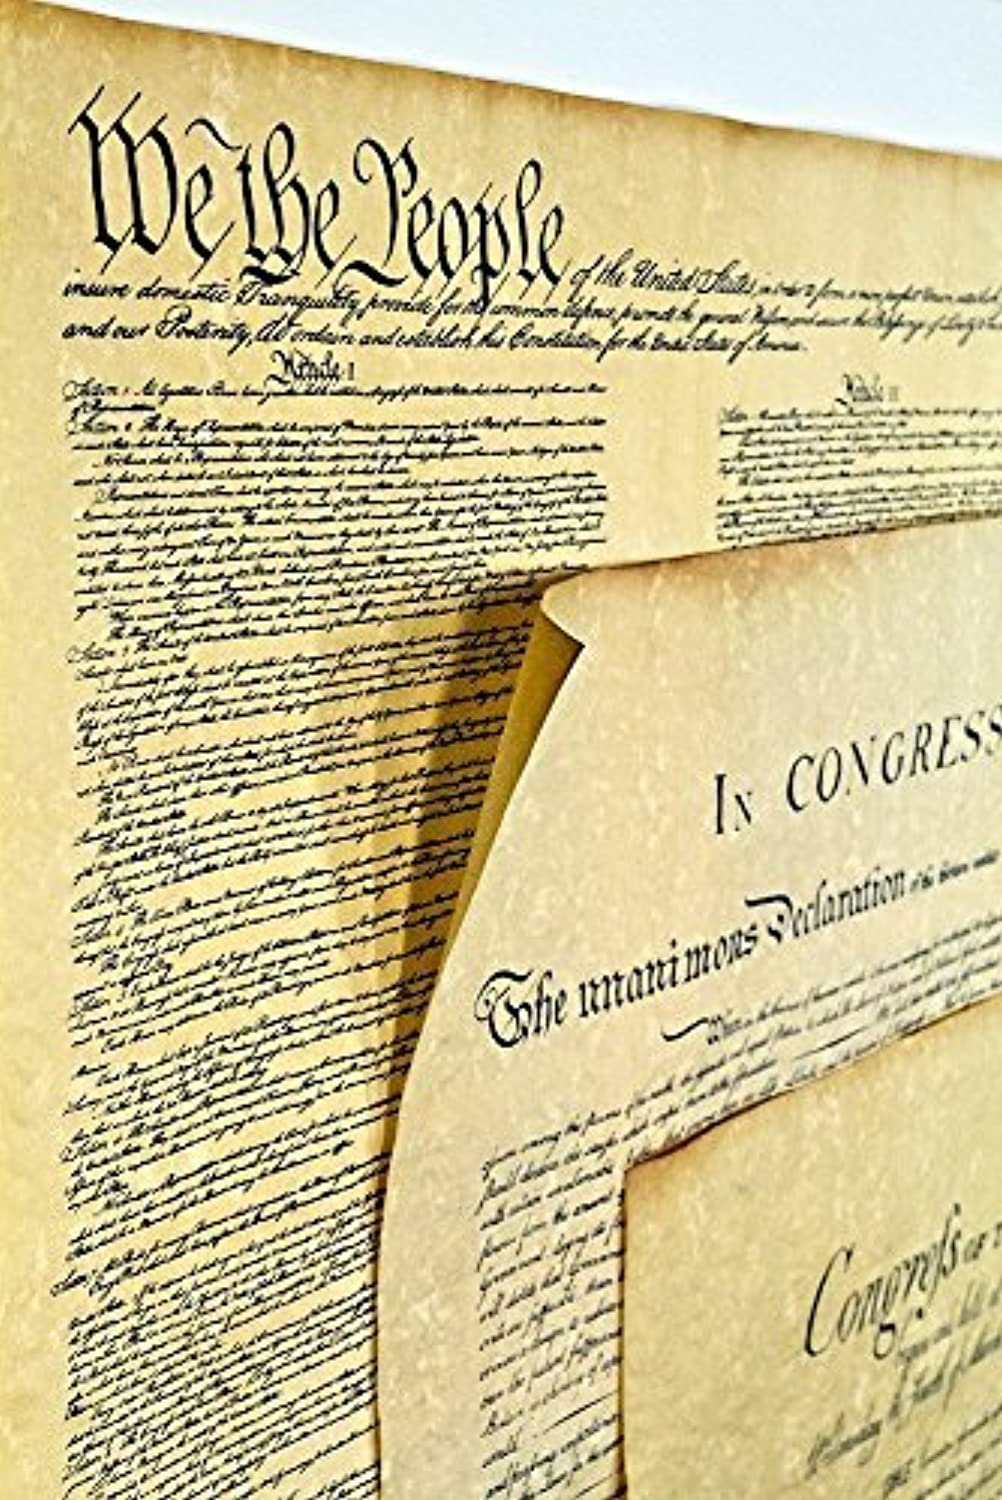 Declaration of Independence 23 X 29, Constitution of the U.S. 23 X 29, Bill of Rights 23 X 29 Posters Shipped in Mailing Tube by Historical Documents